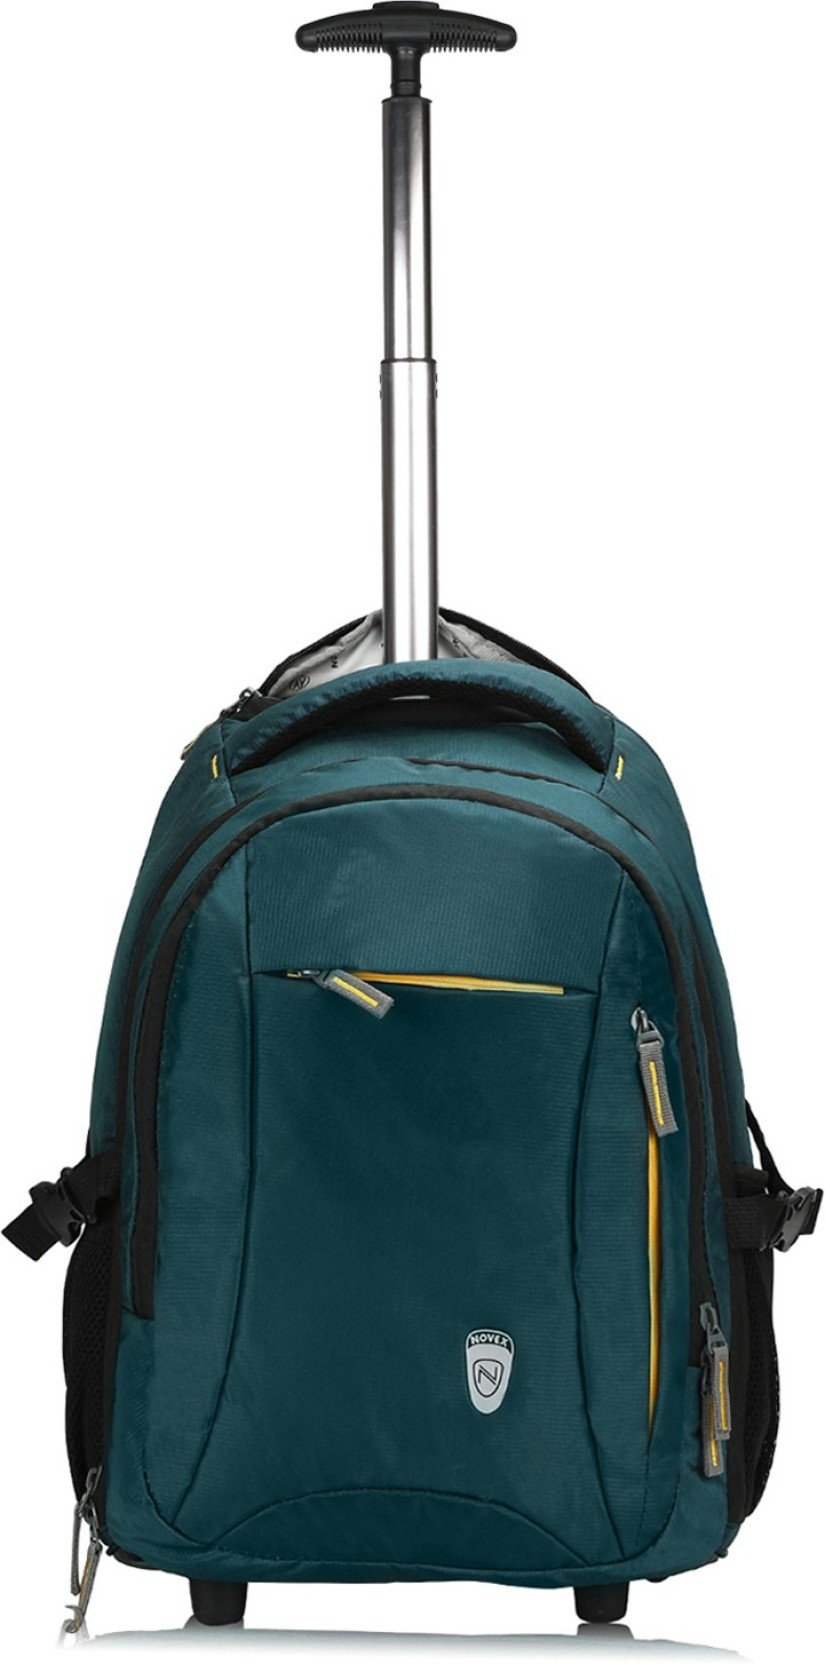 87fe1d951d29 Novex 15.6 inch Trolley Laptop Strolley Bag Green - Price in India ...